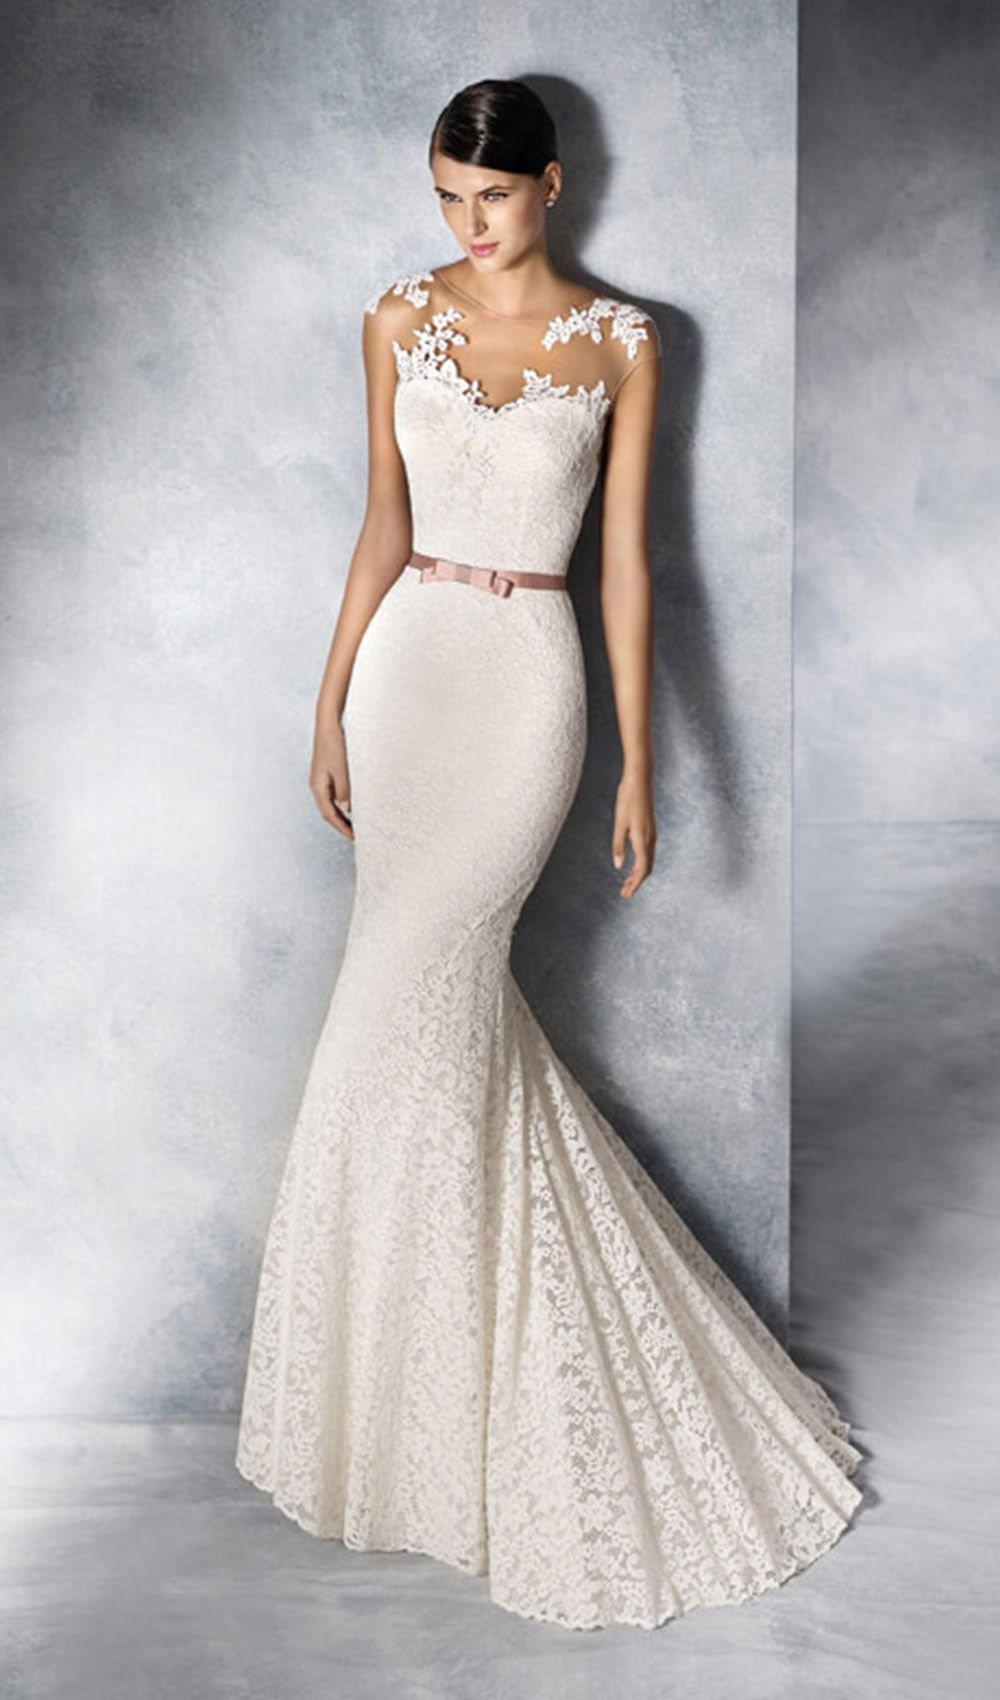 Try This Lace Crystal Tulle Sheath Wedding Dress With Illusion Neckline And Back